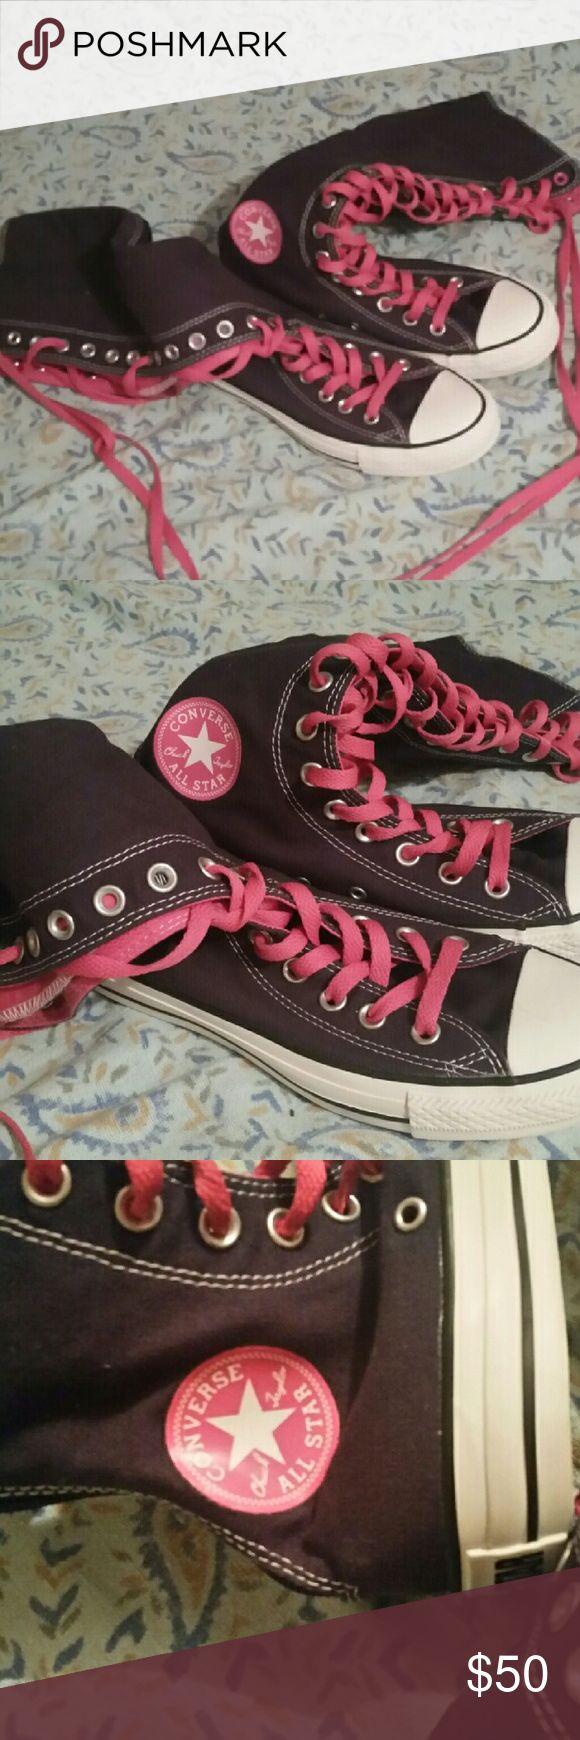 NWOT! Navy Converse Extra Tall Chucks NWOT! NEVER WORN. MINT CONDITION. Navy Blue and Pink. So cute and Uber trendy!! So sexy and comfy with a pair if daisy dukes! Scoop these up at this price! They'll last you a long time too. :) Converse Shoes Athletic Shoes